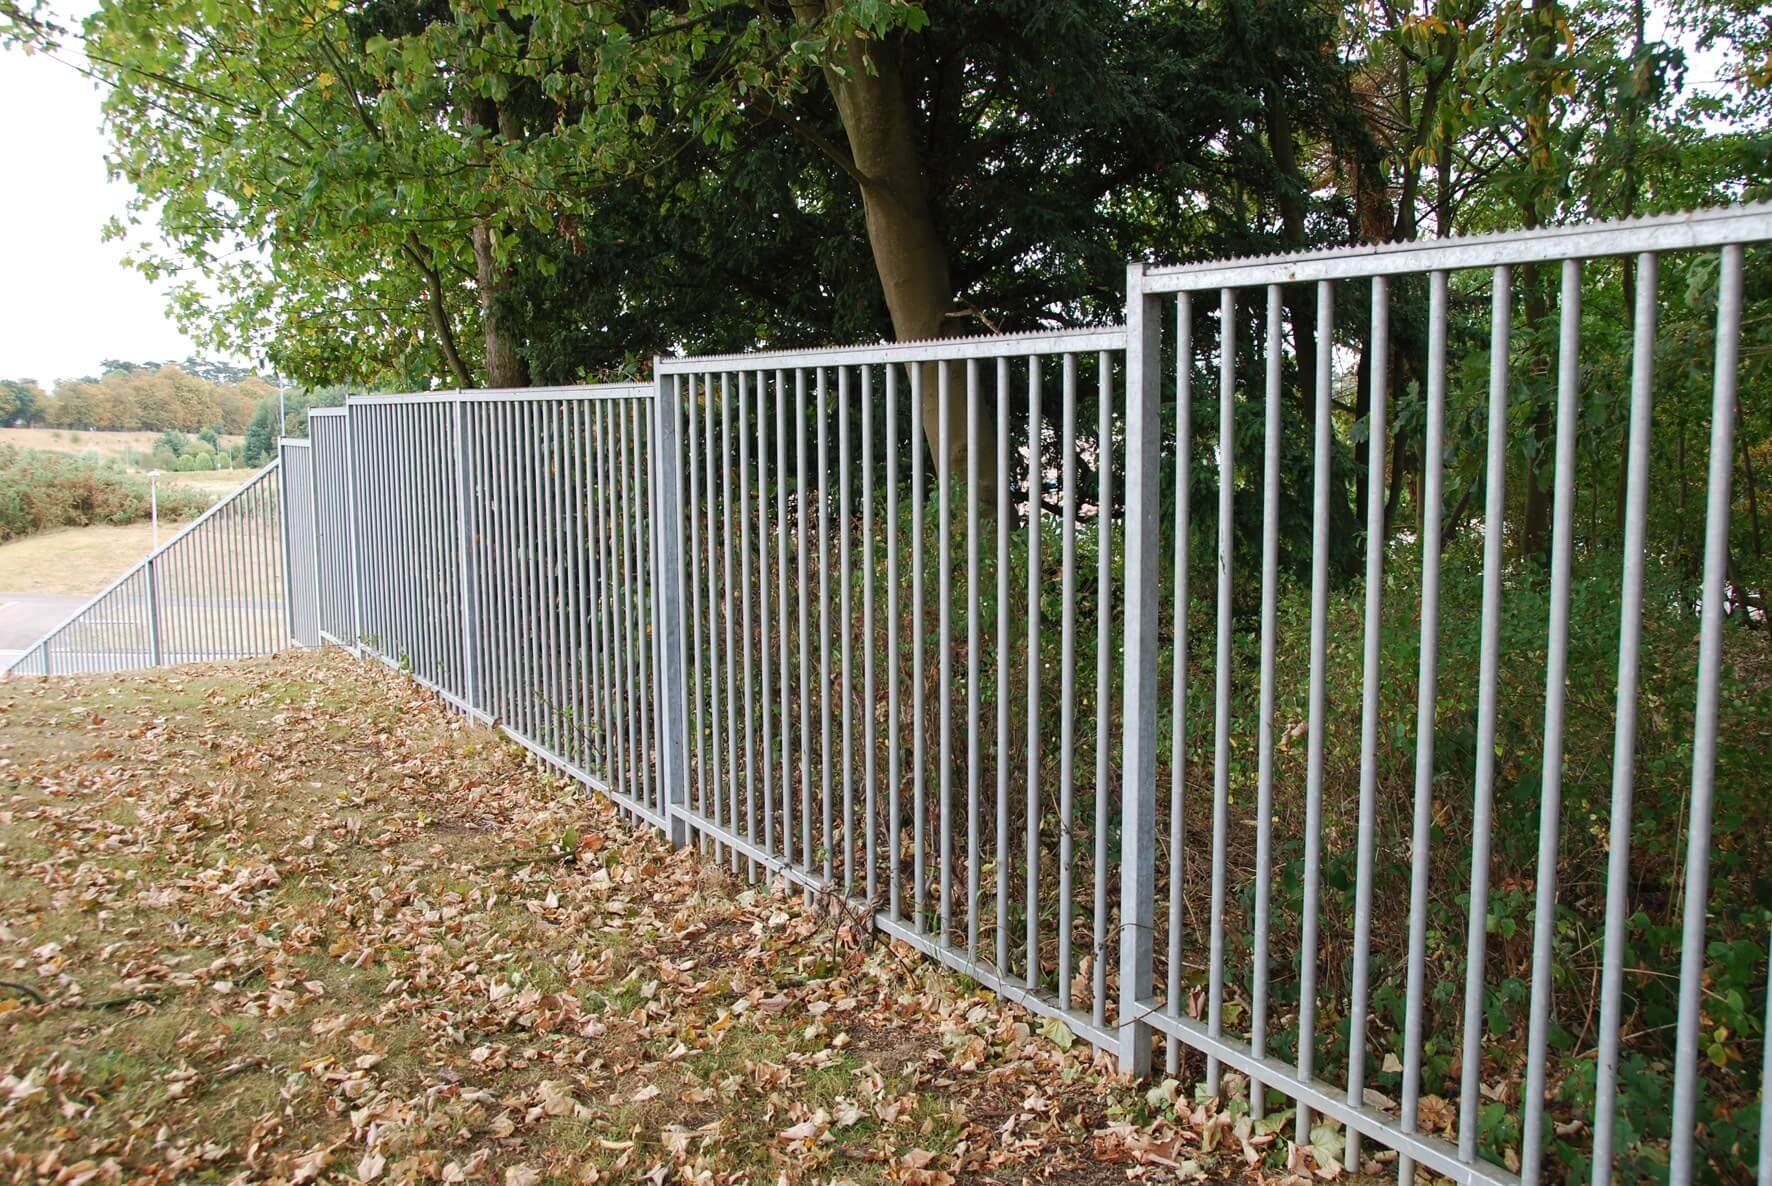 Sentry Vertical Bar Fencing with Galvanised Finish